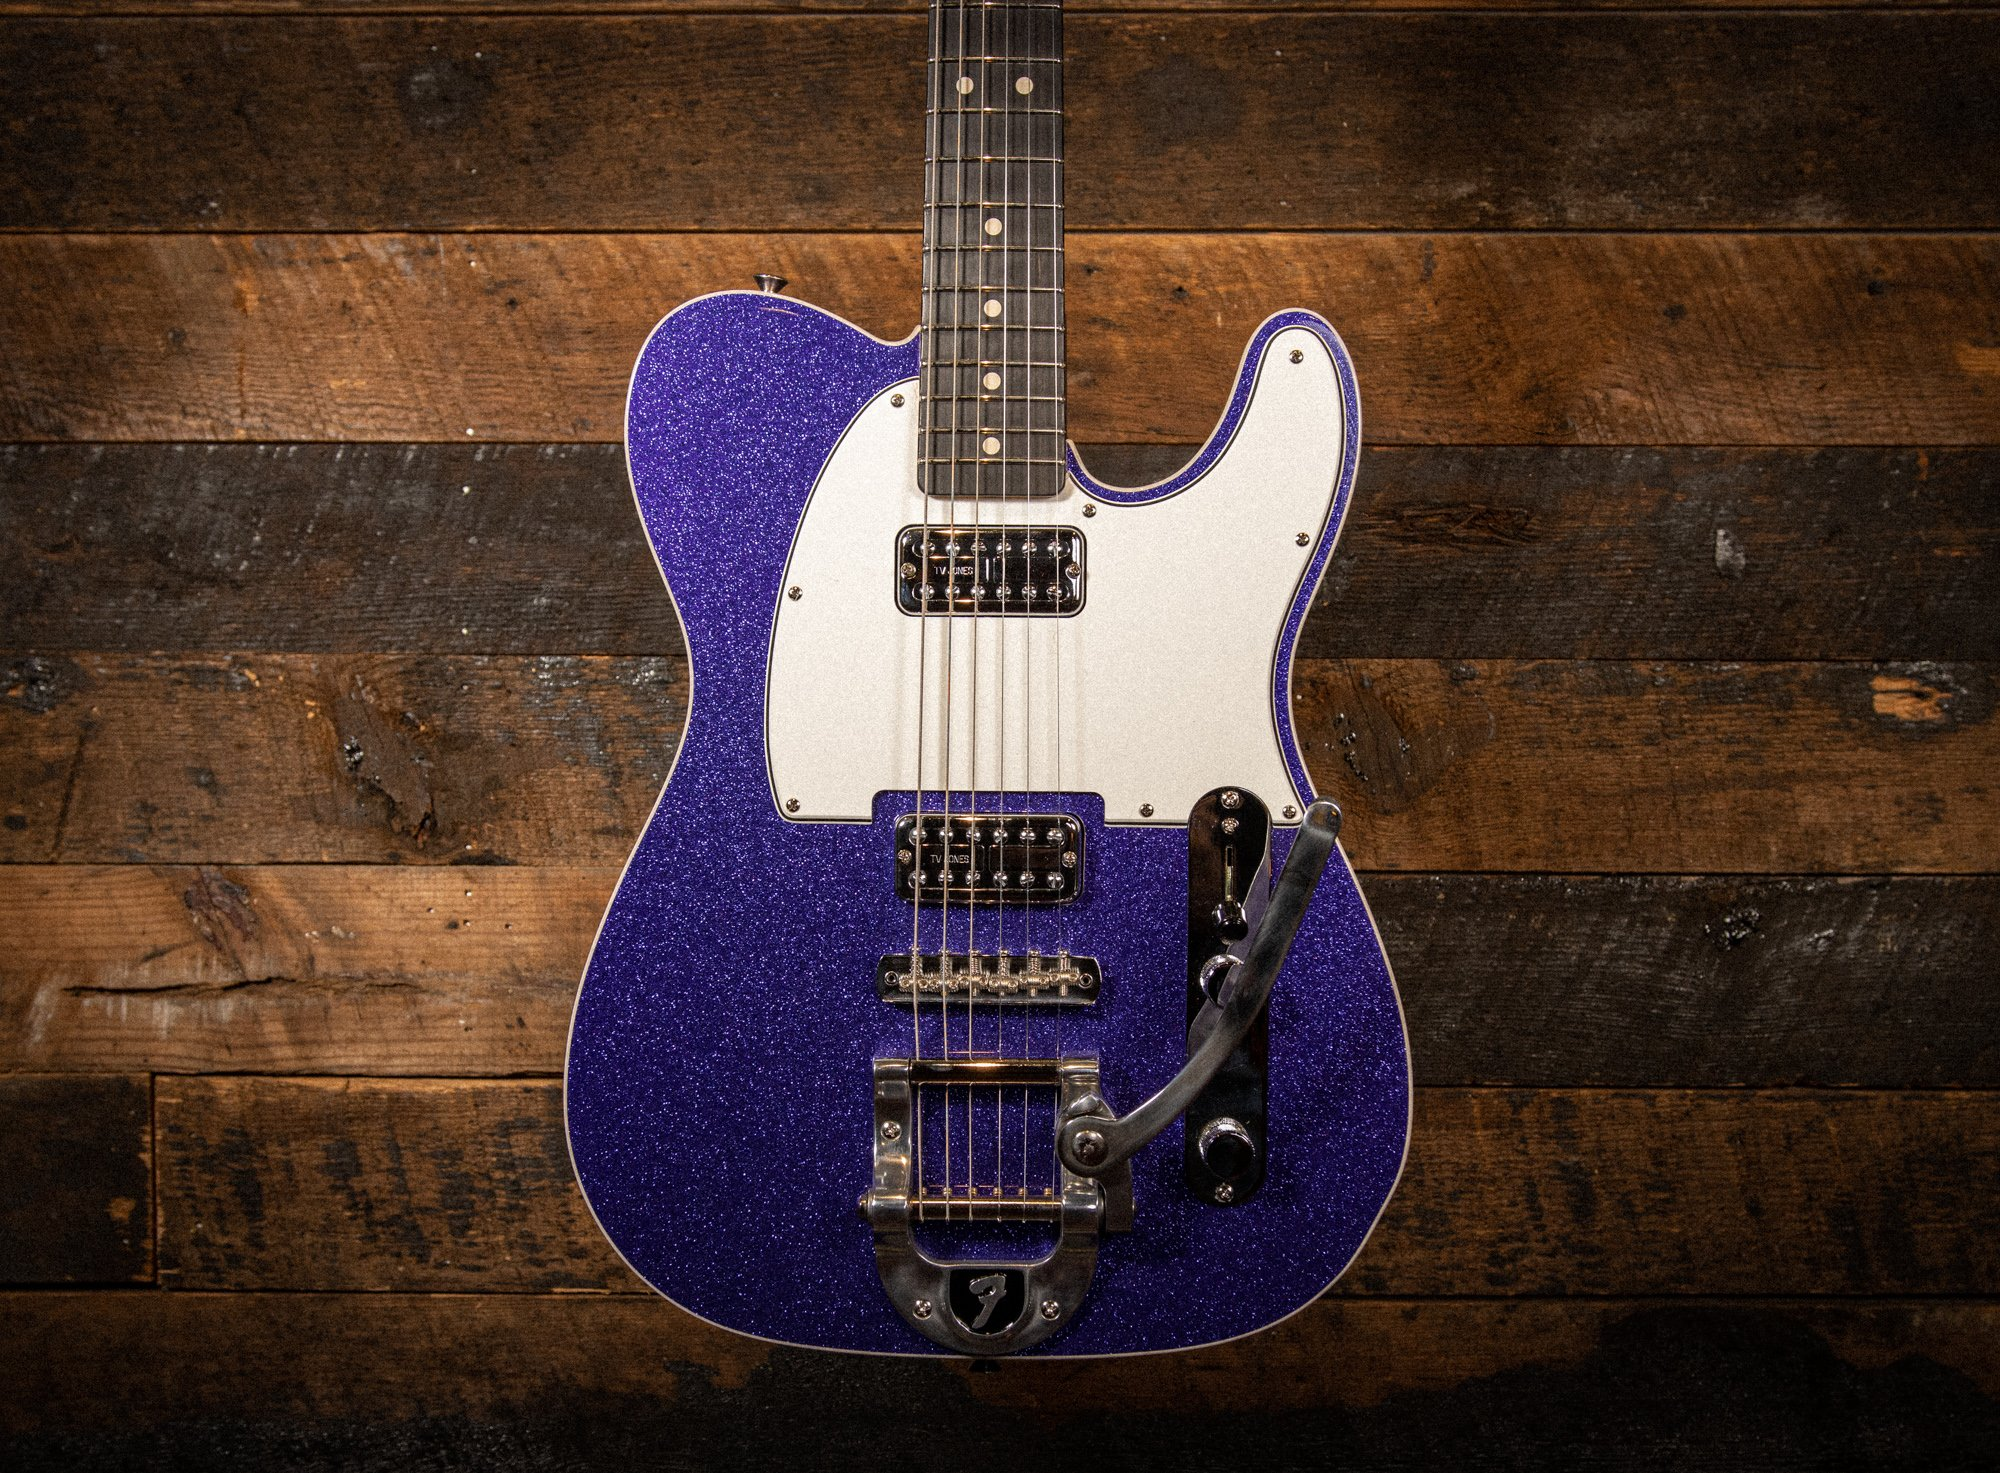 Fender Custom Shop 1963 Telecaster NOS in Purple Sparkle with Matching Headstock with TV Jones Pick-ups and Bigsby